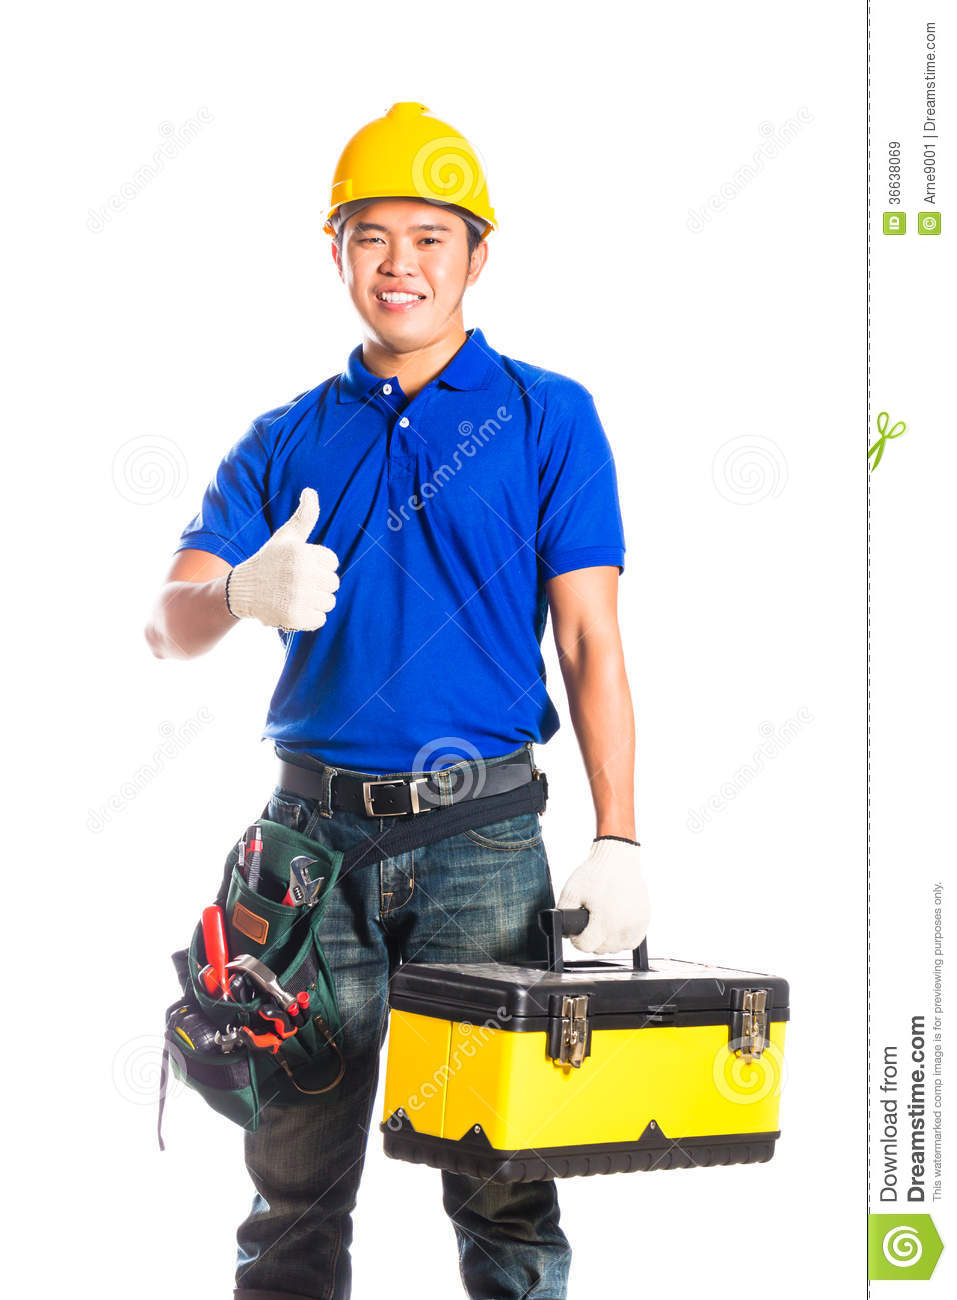 Asian Construction Worker With Tools Royalty Free Stock